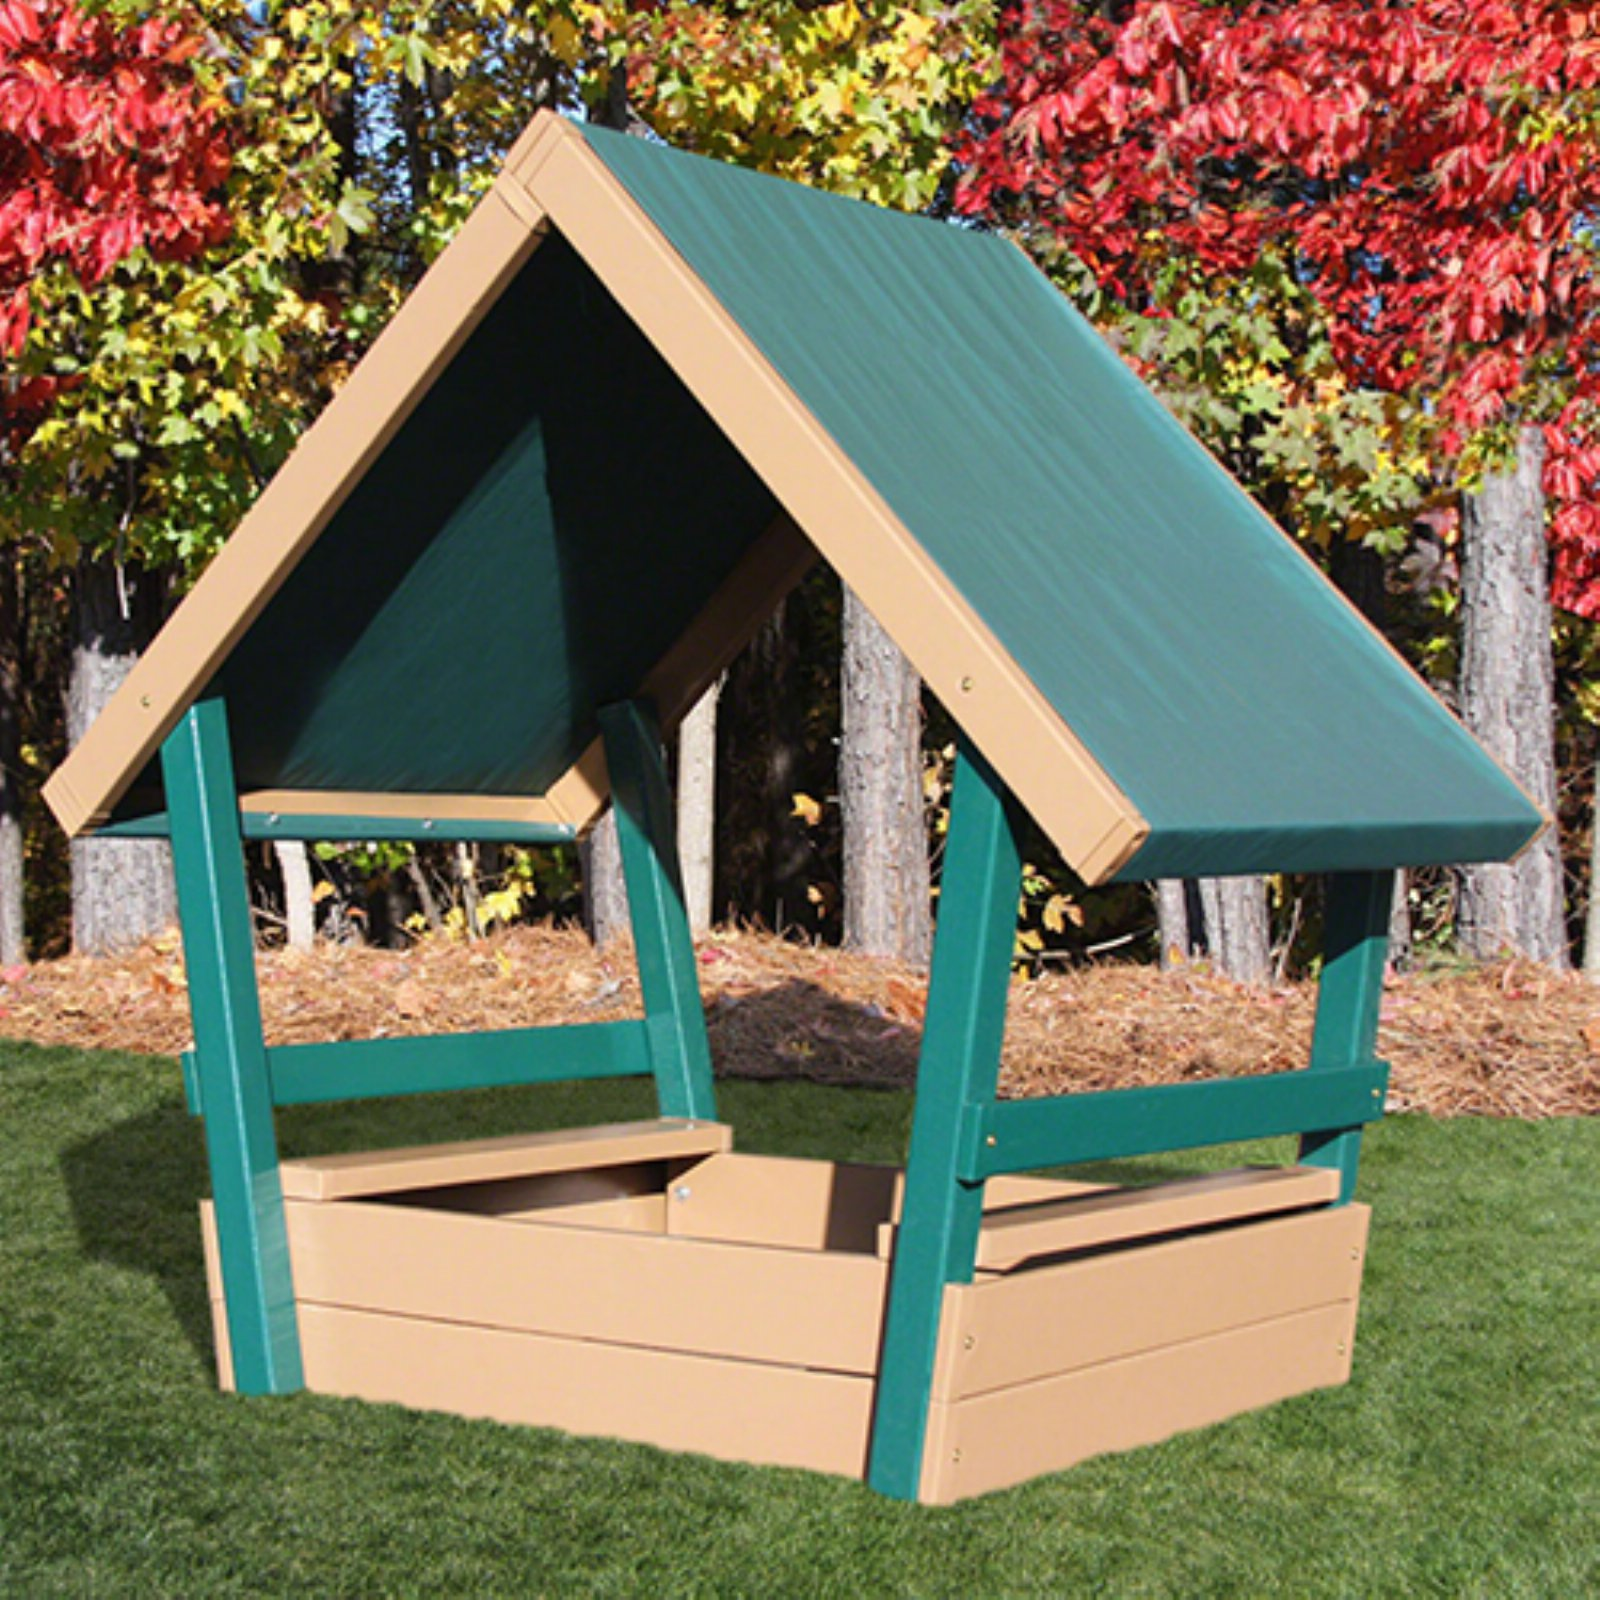 Kidwise Congo Kid's Chalet Sandbox with Roof Sand Brown by Kidwise Outdoor Products Inc